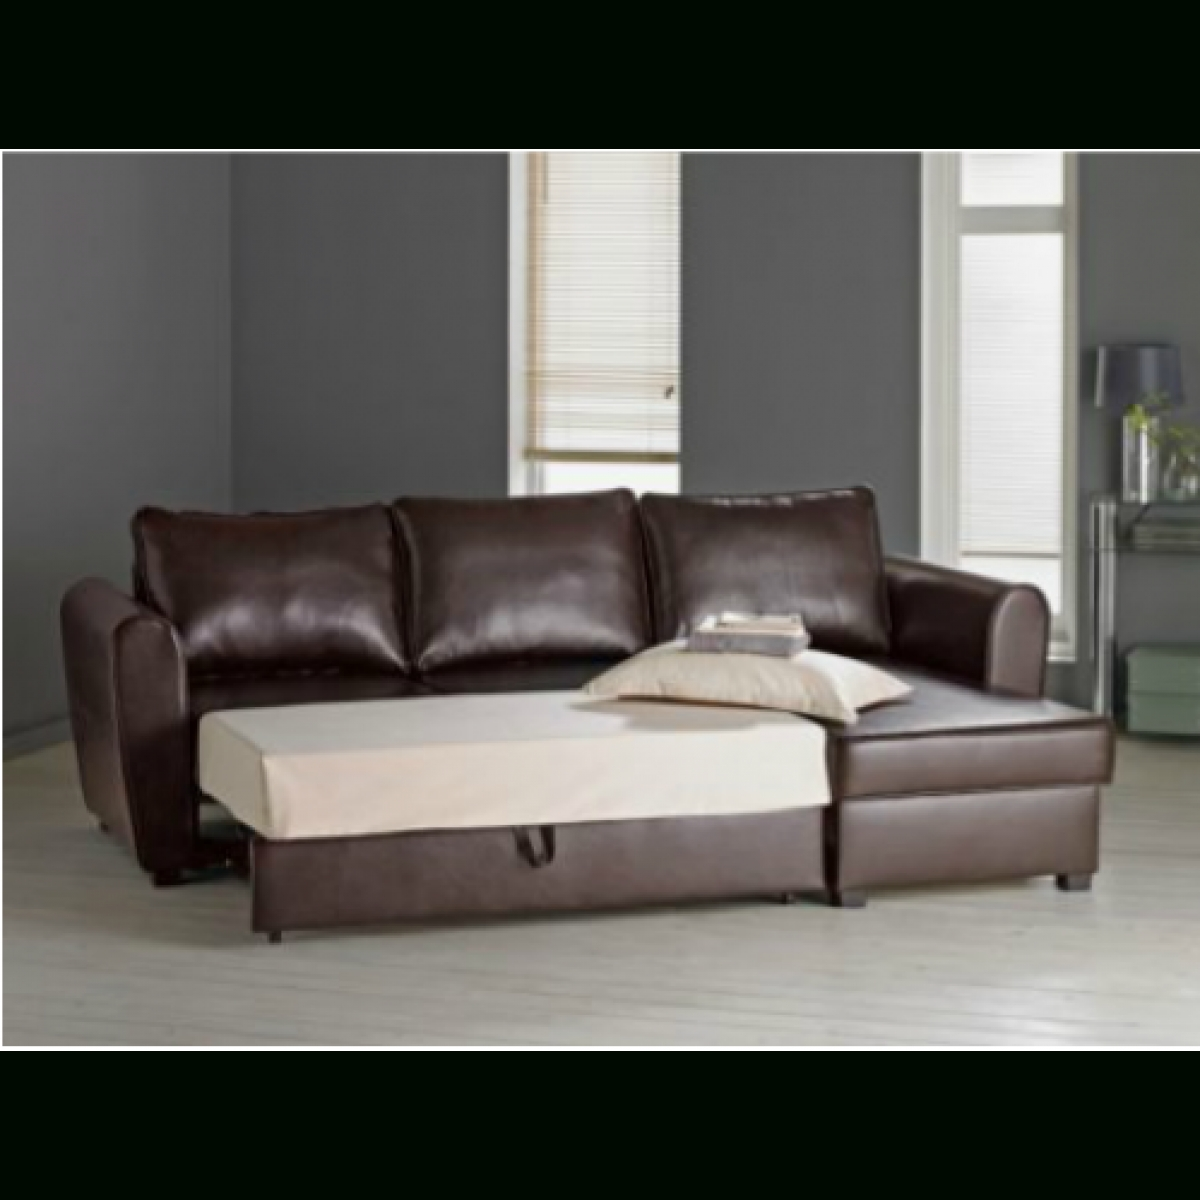 New Siena Fabric Corner Sofa Bed With Storage – Charcoal In Corner Sofa Beds (View 16 of 20)